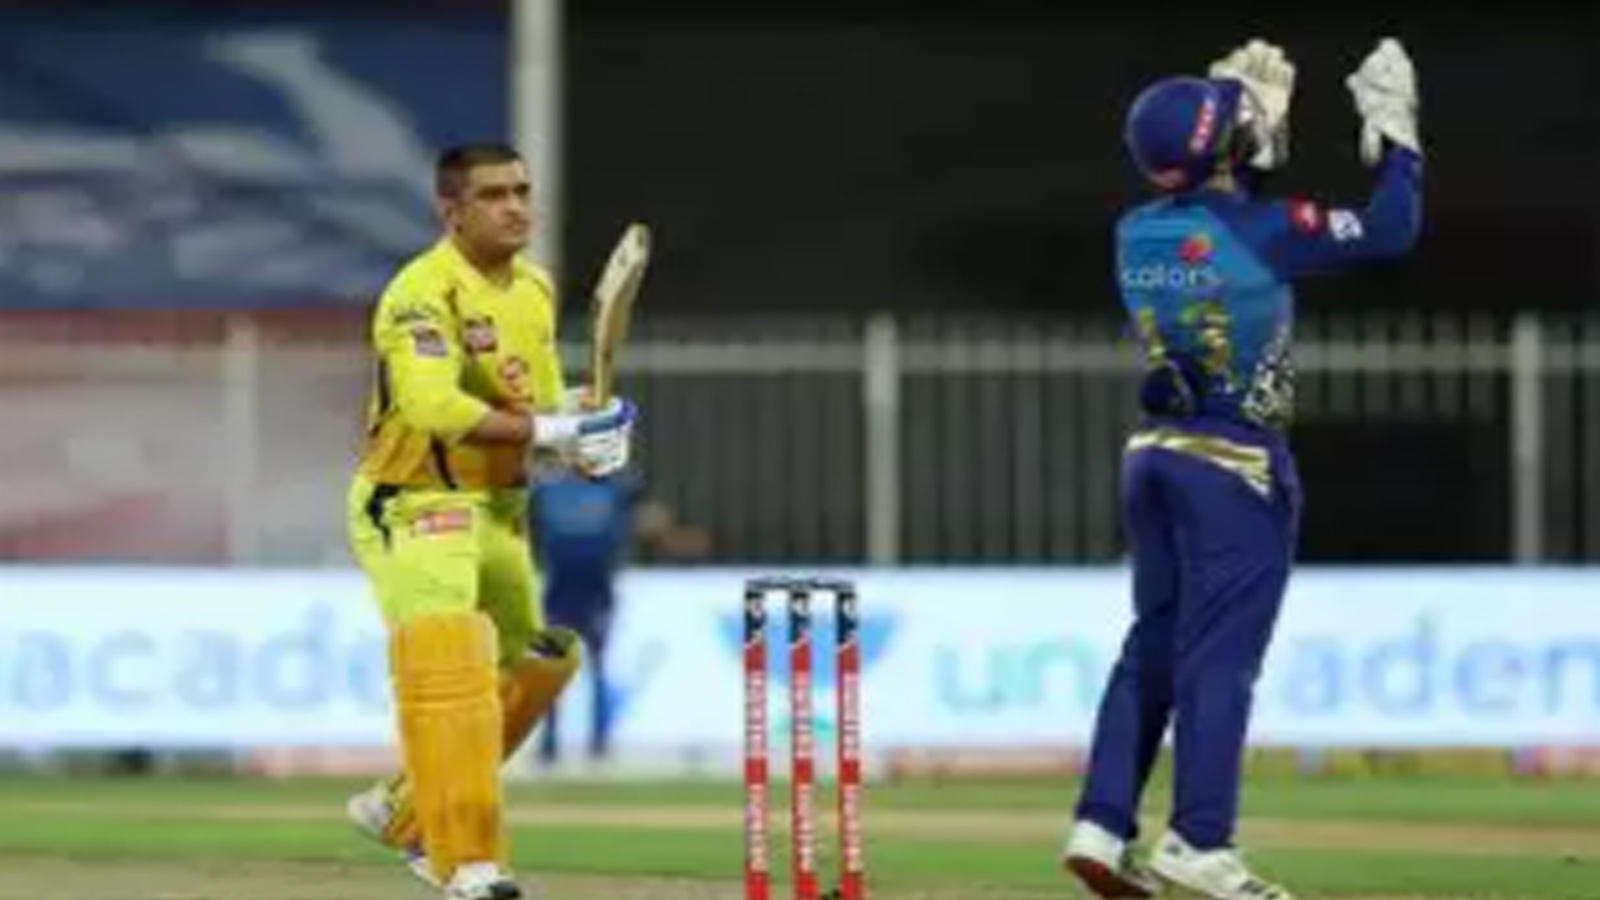 ipl-2020-it-does-hurt-where-we-are-at-this-stage-says-ms-dhoni